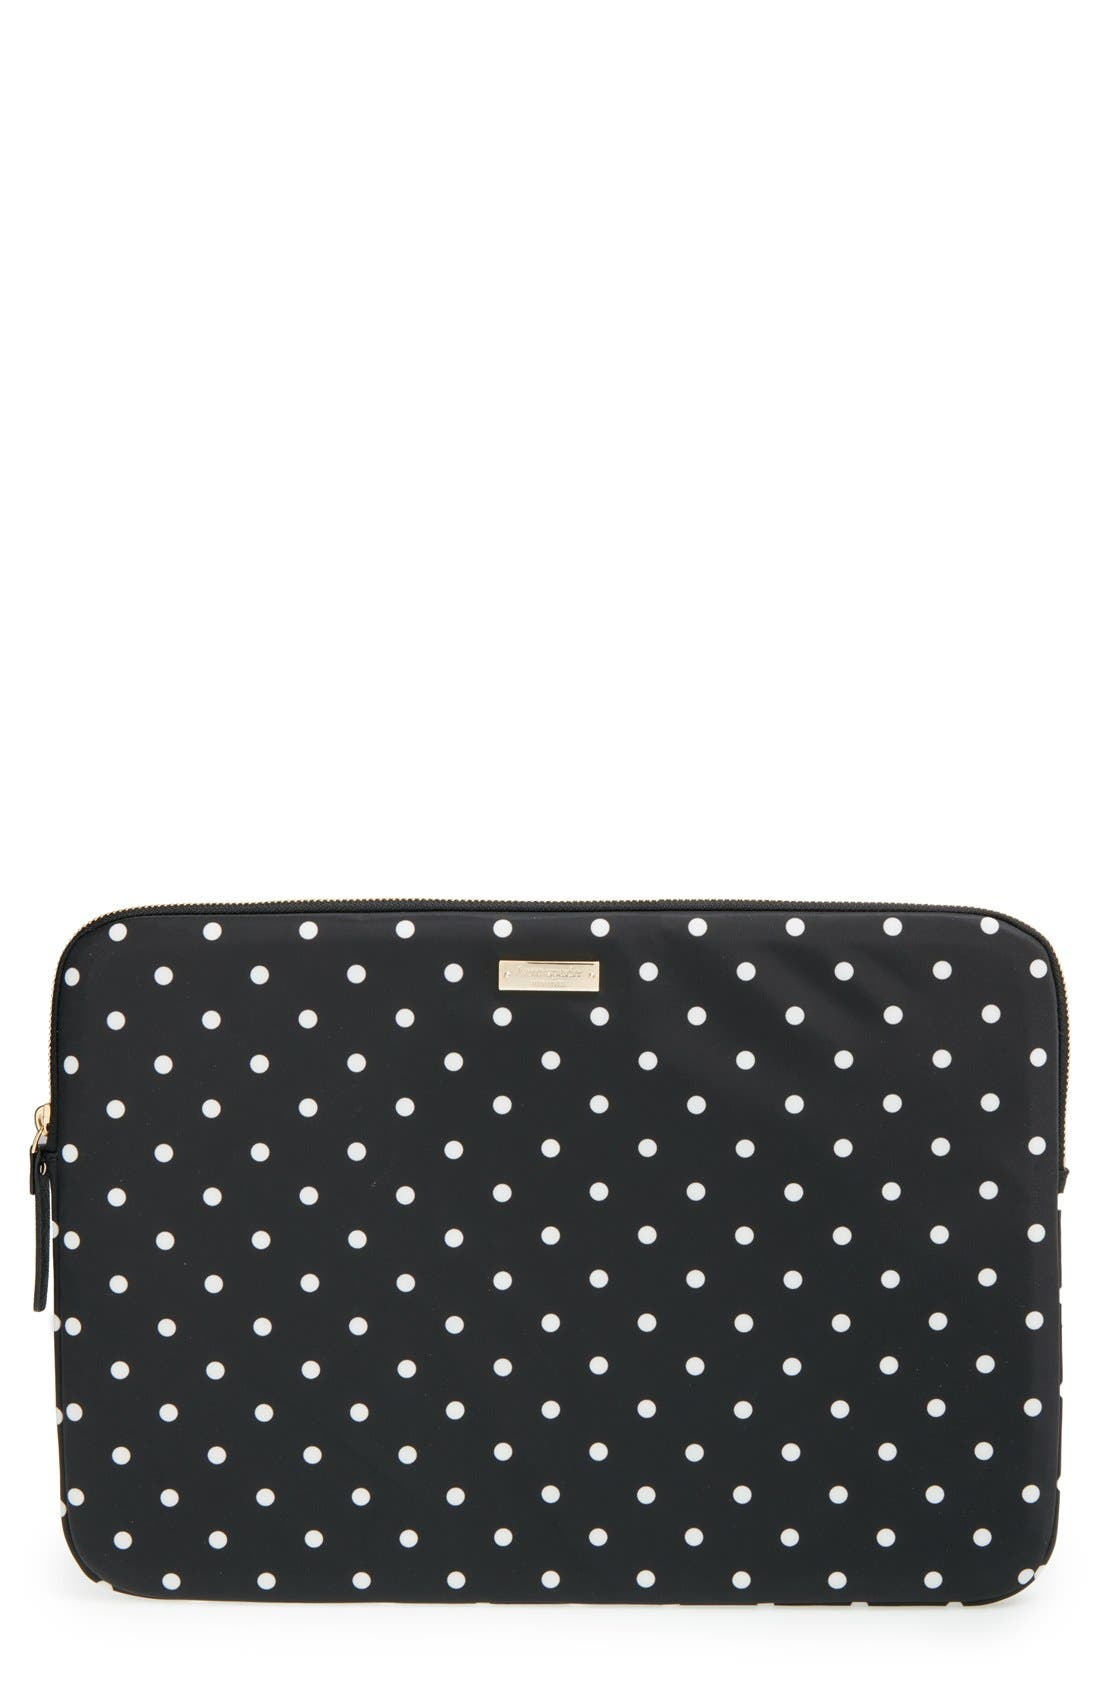 kate spade new york 'classic nylon - mini pavilion' laptop sleeve (15 Inch)